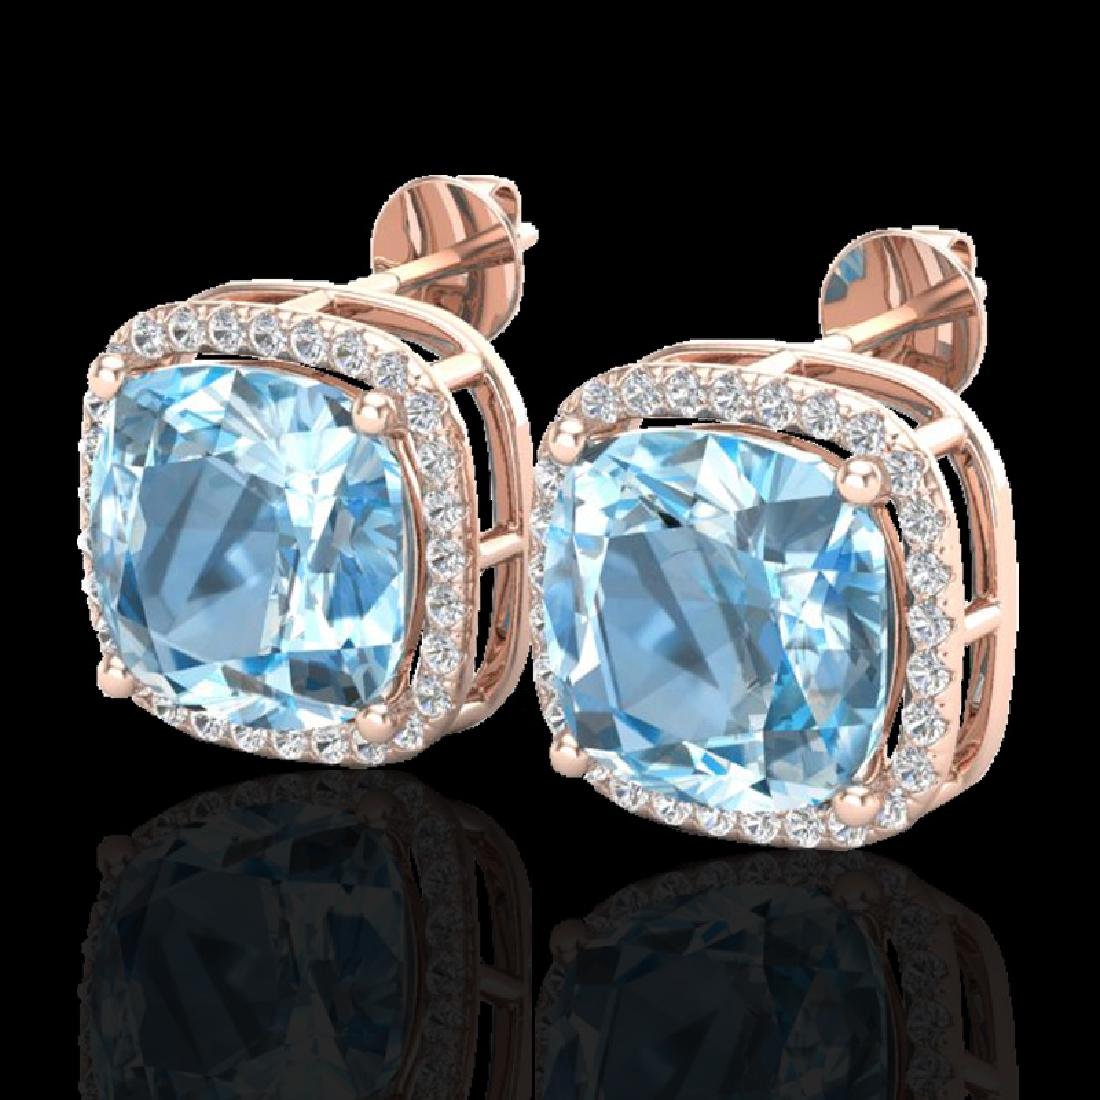 12 CTW Sky Blue Topaz & Micro Halo VS/SI Diamond